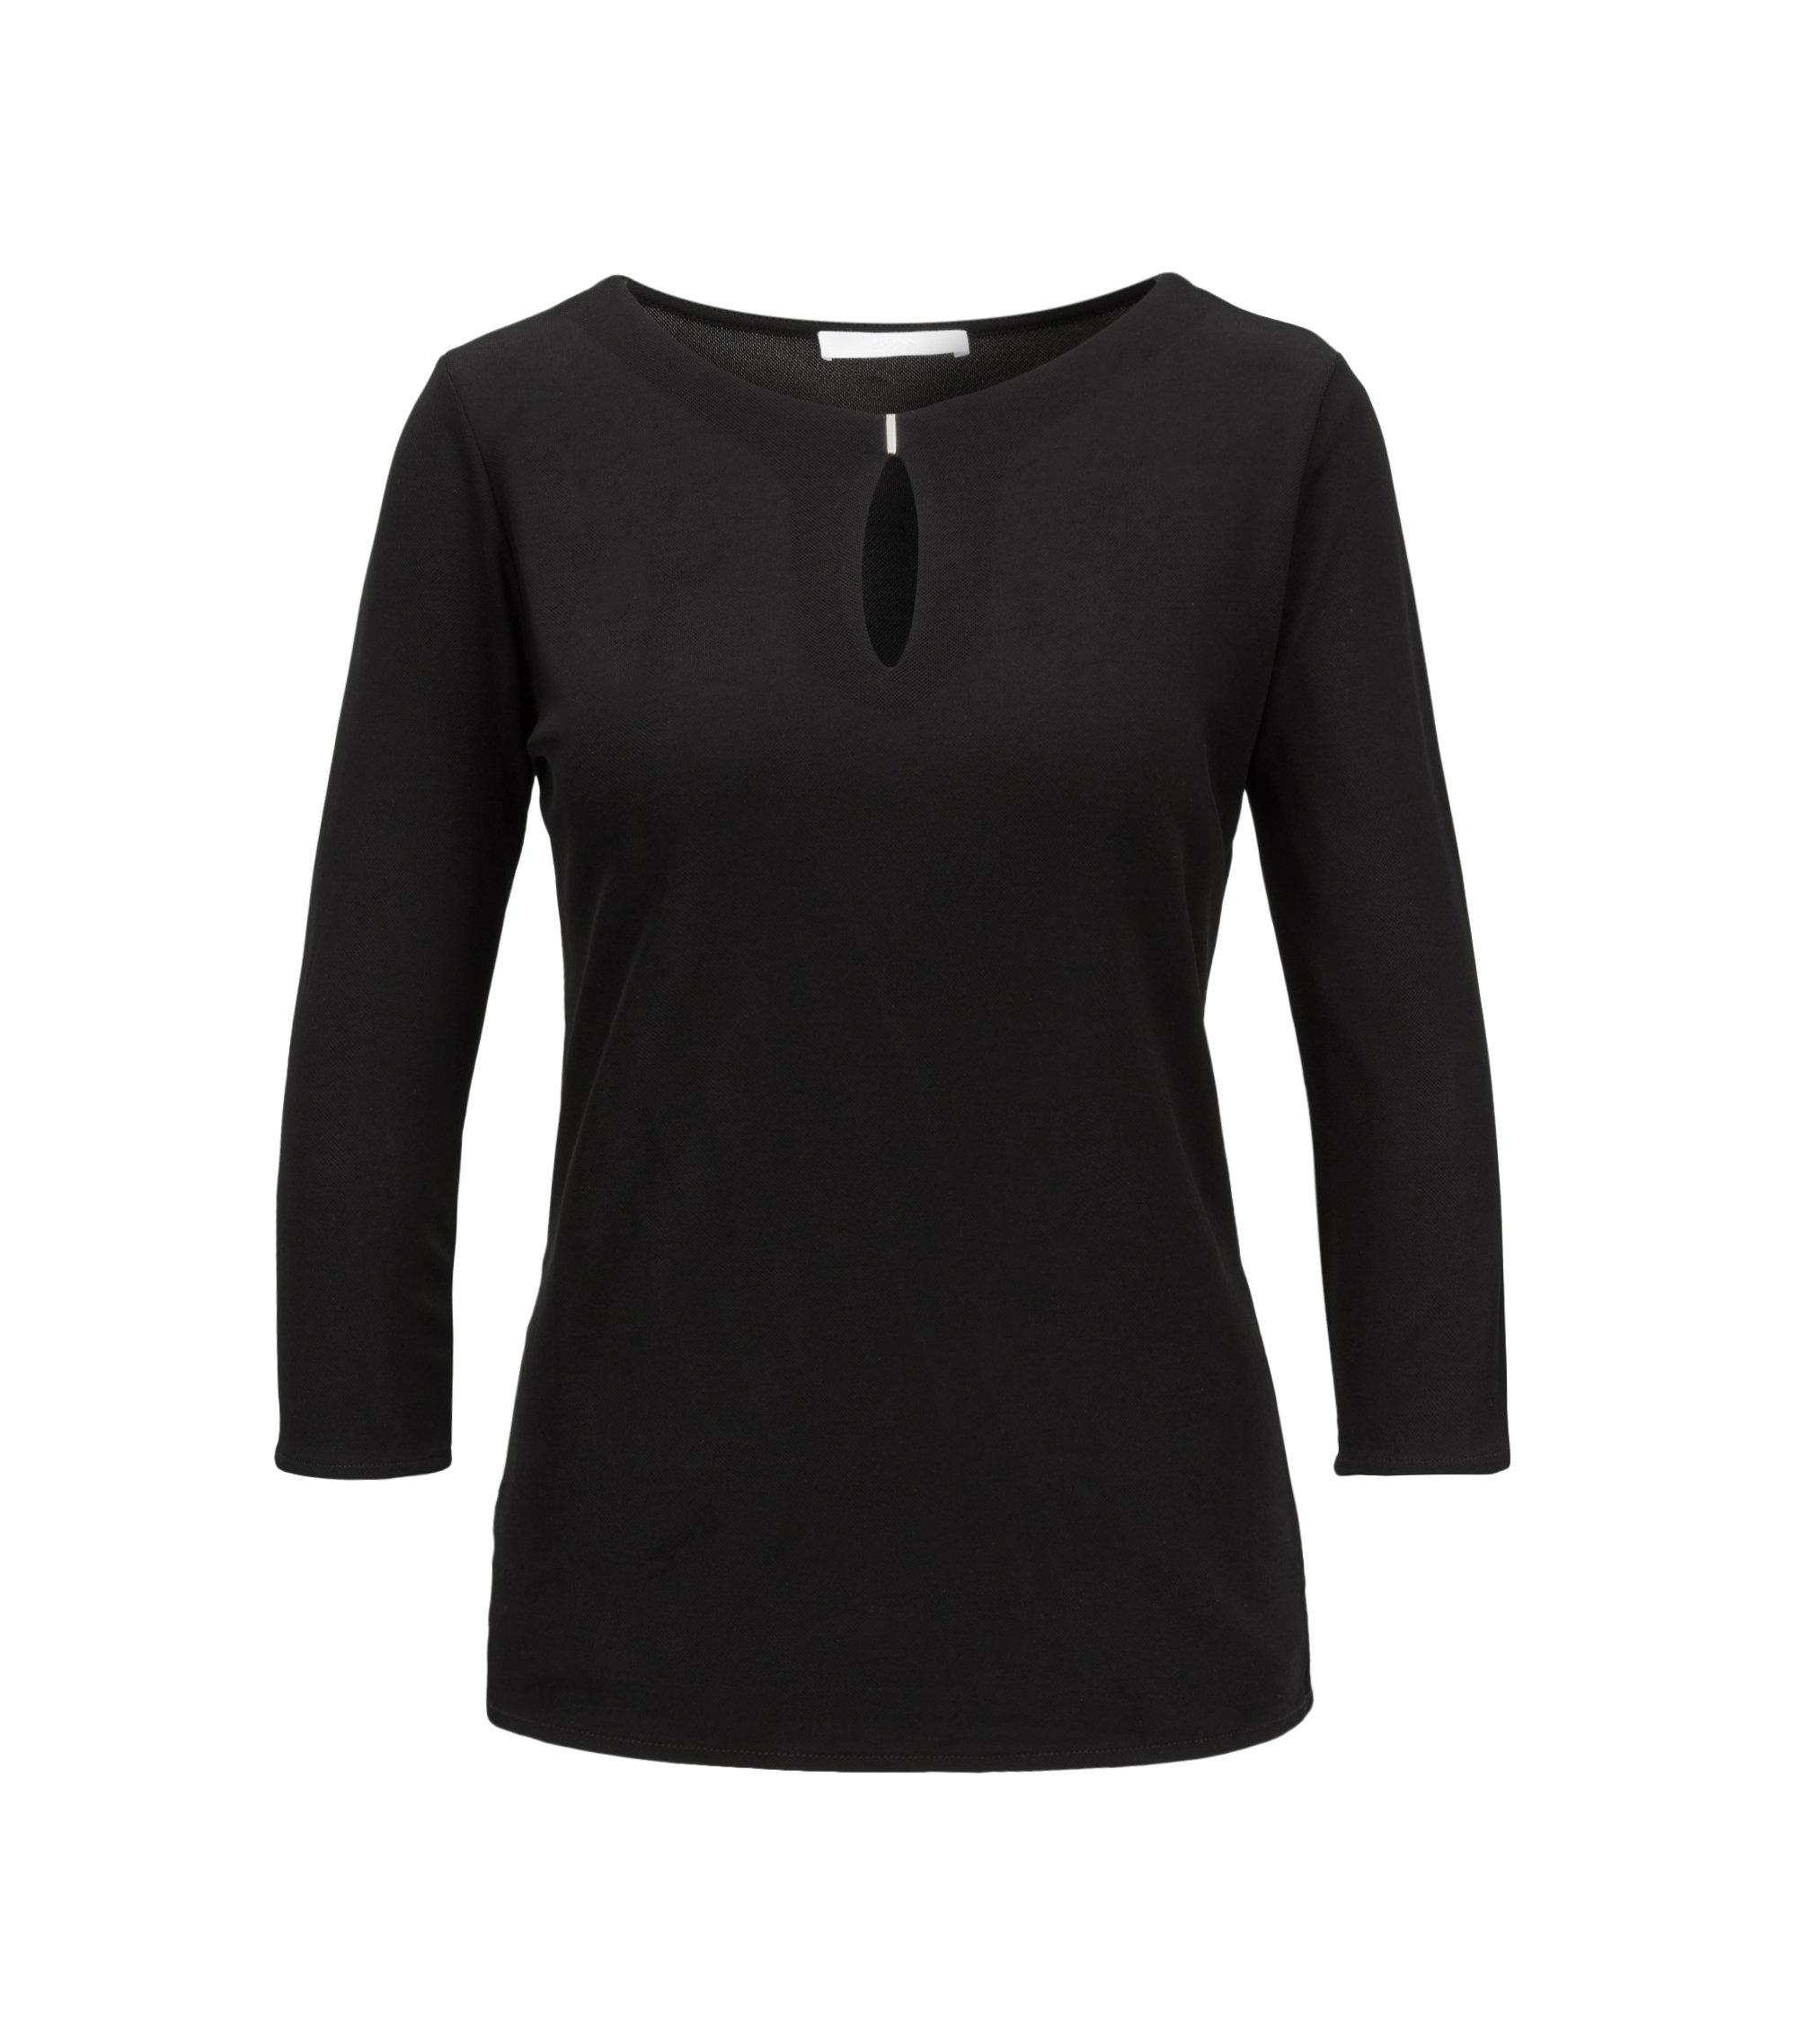 Keyhole-neck top in matt crepe jersey, Black